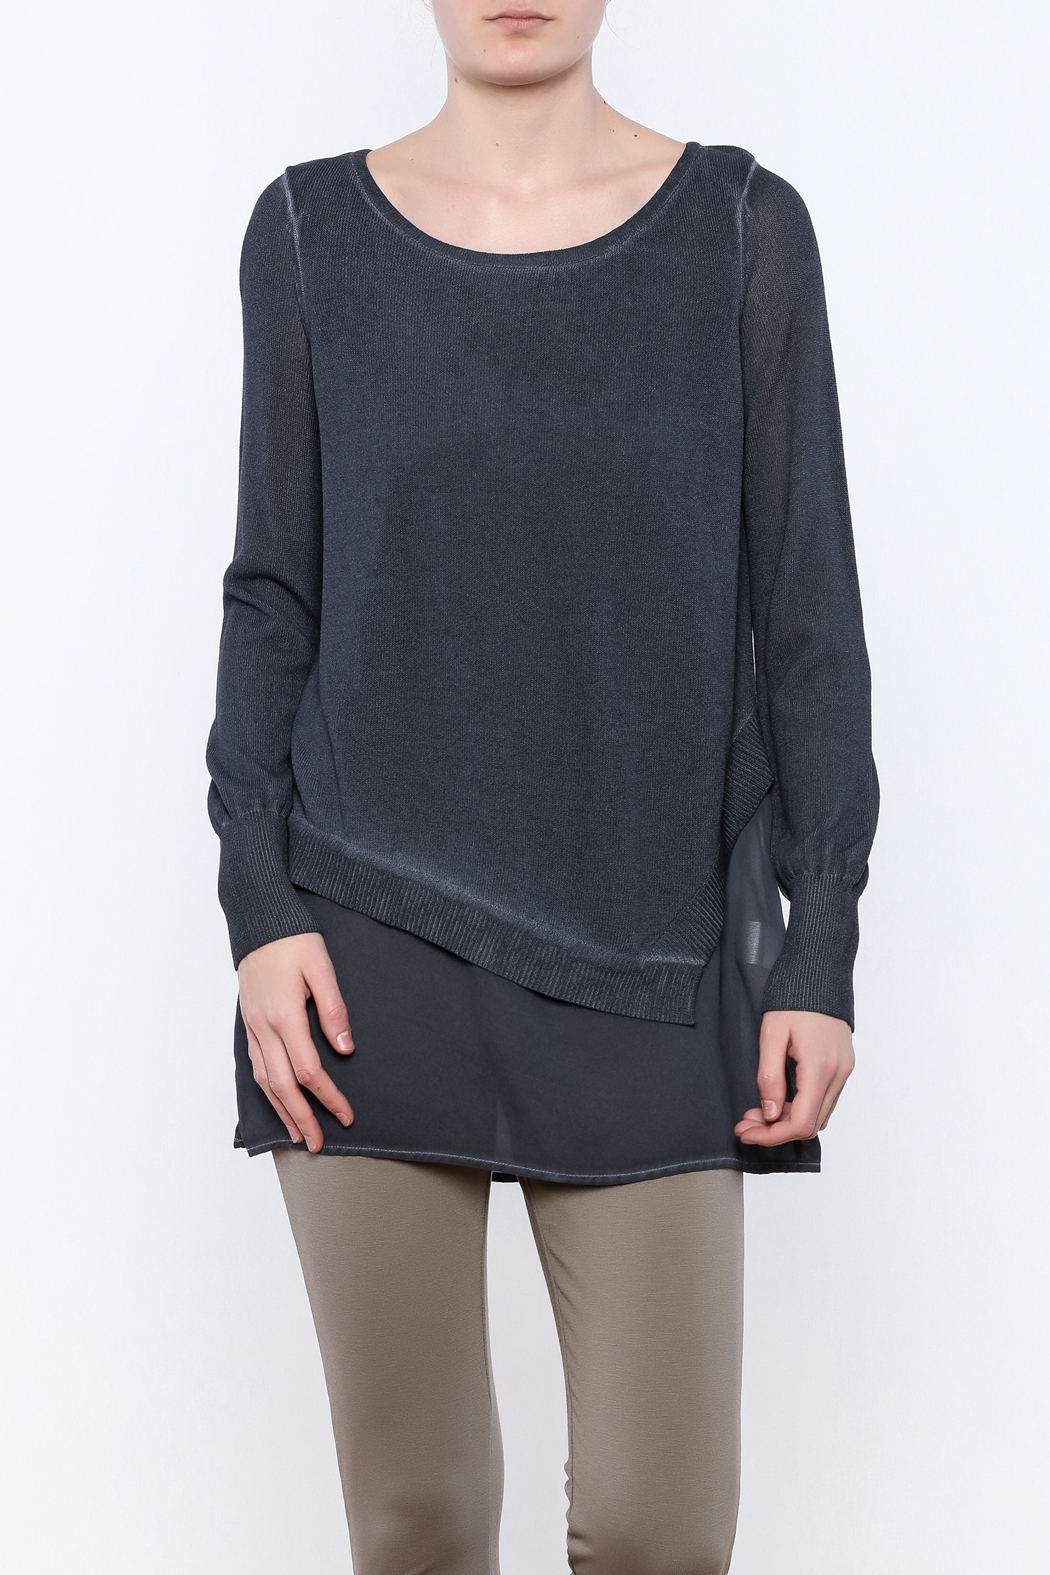 Yest Asymmetrical Knit Tunic - Main Image